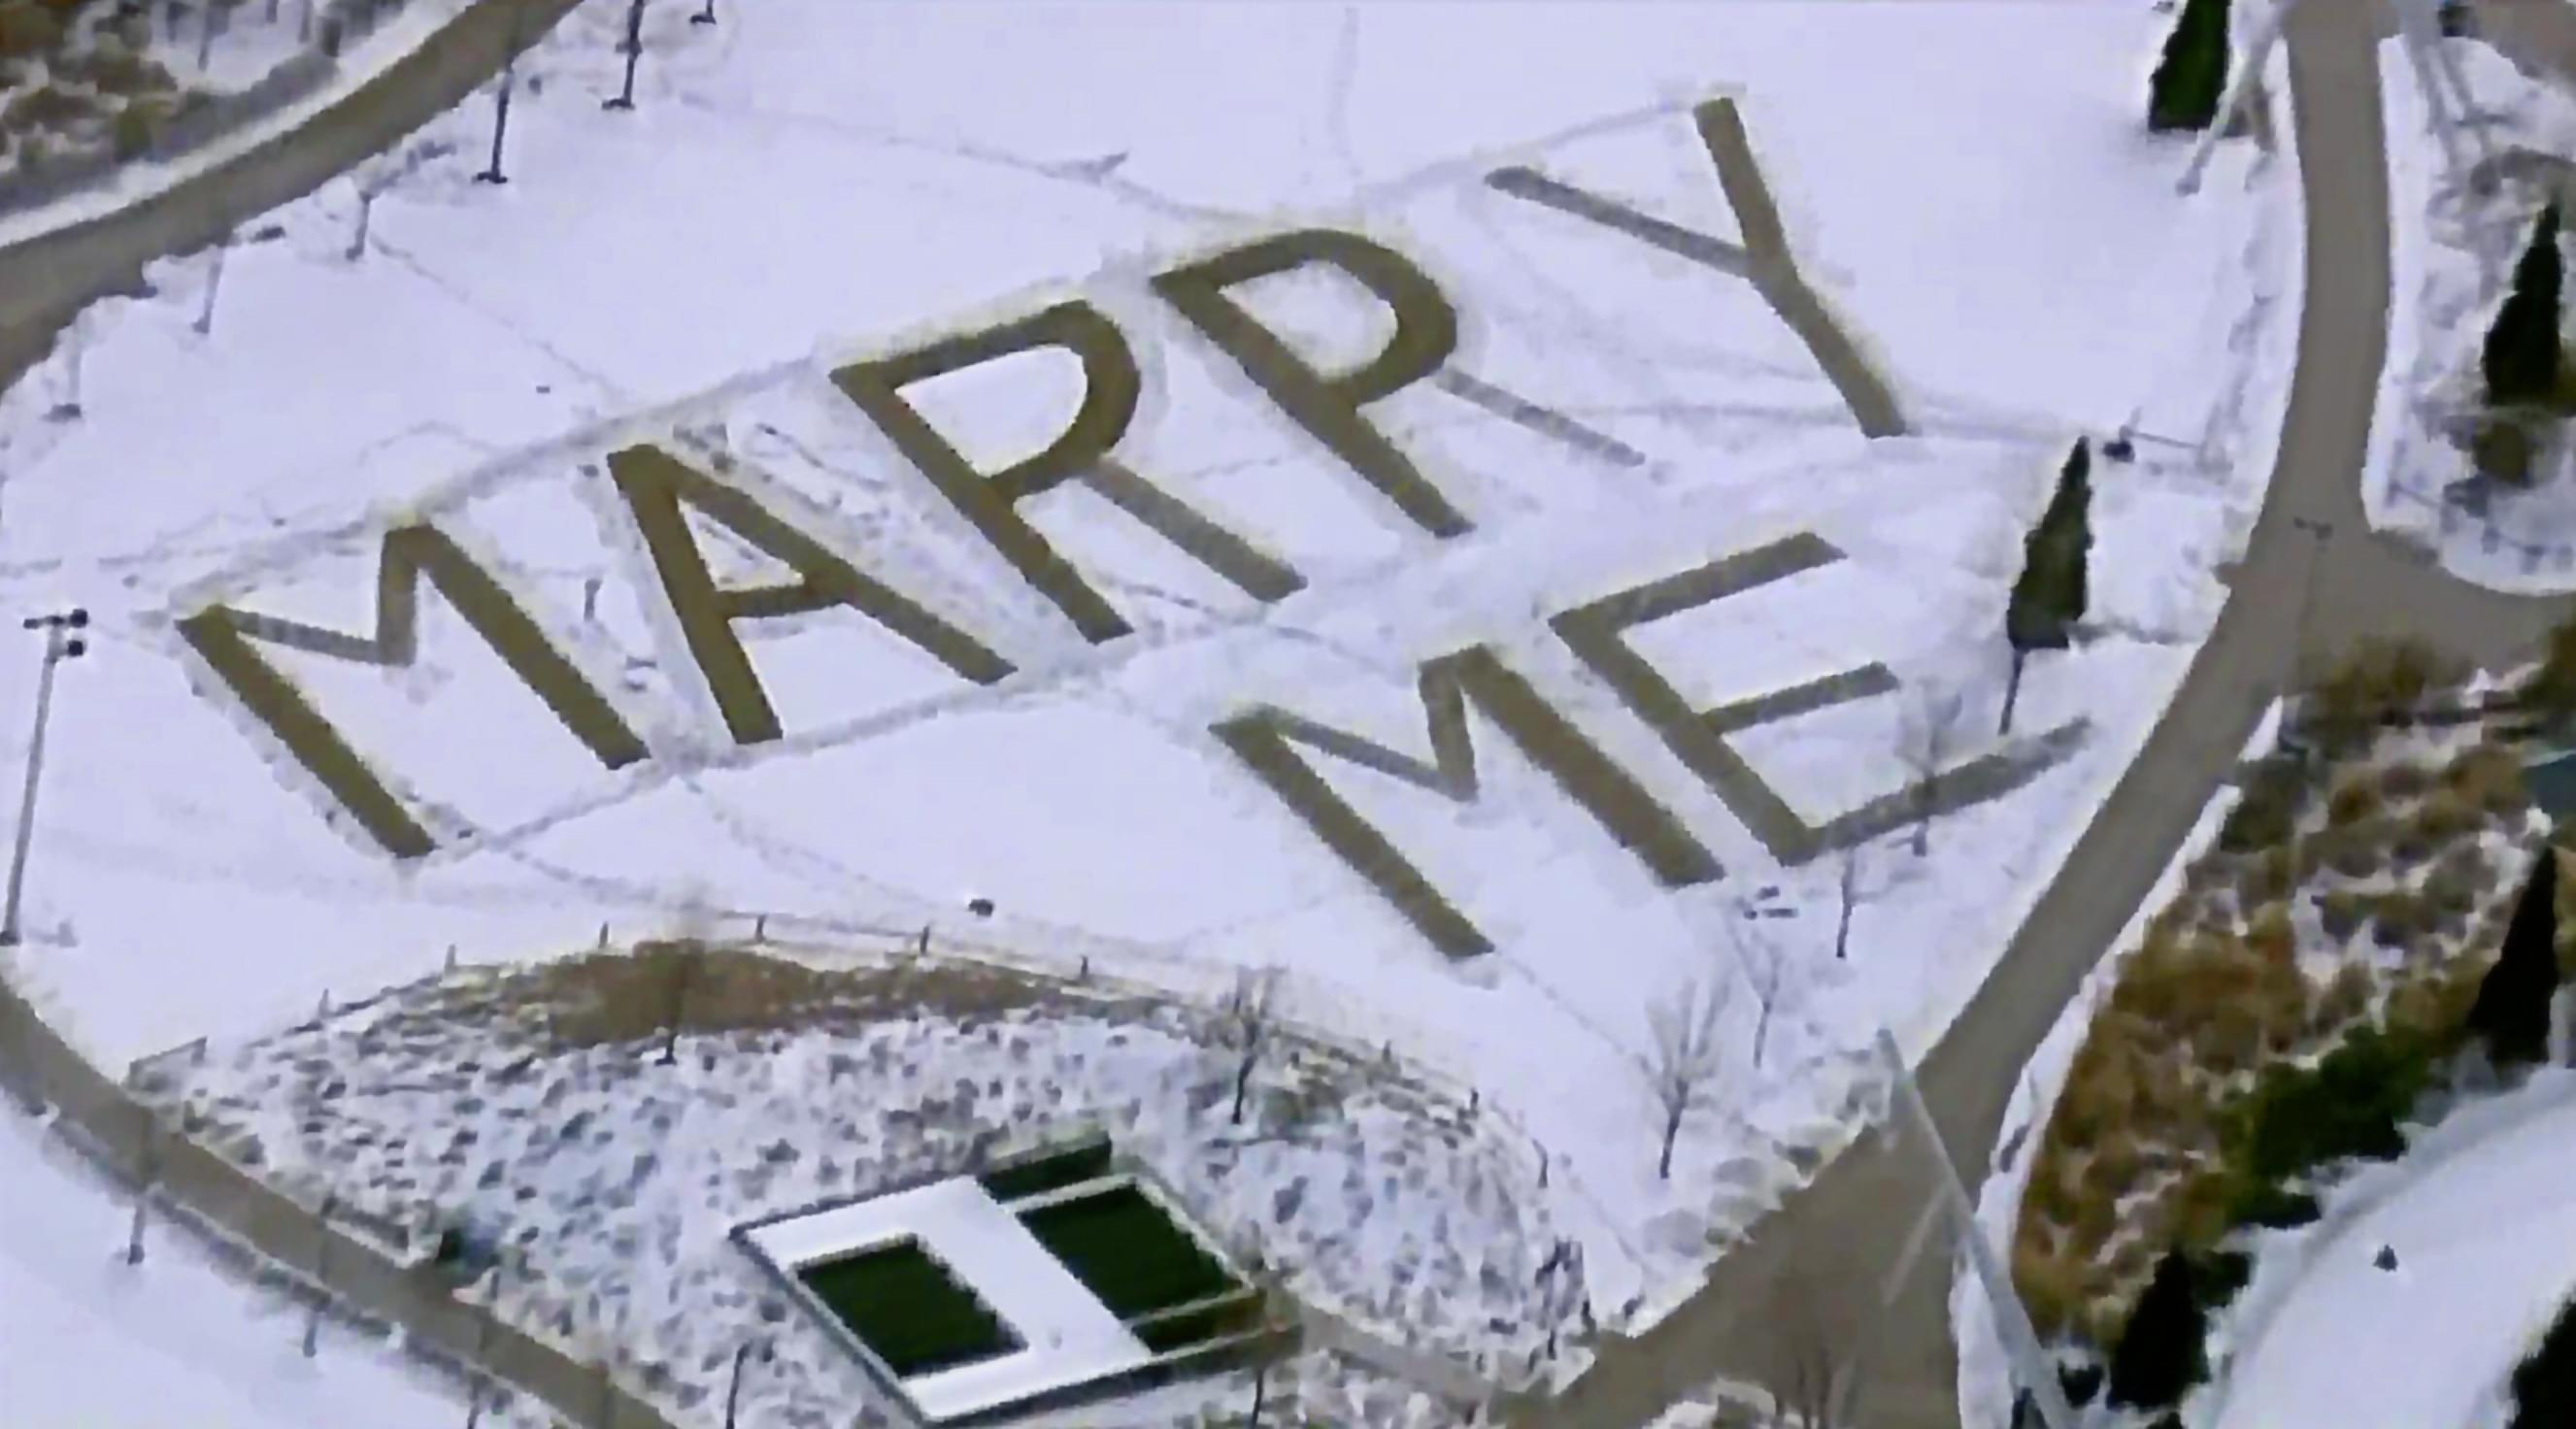 Man writes giant proposal in snow in Maggie Daley Park for girlfriend who works in a nearby skyscraper